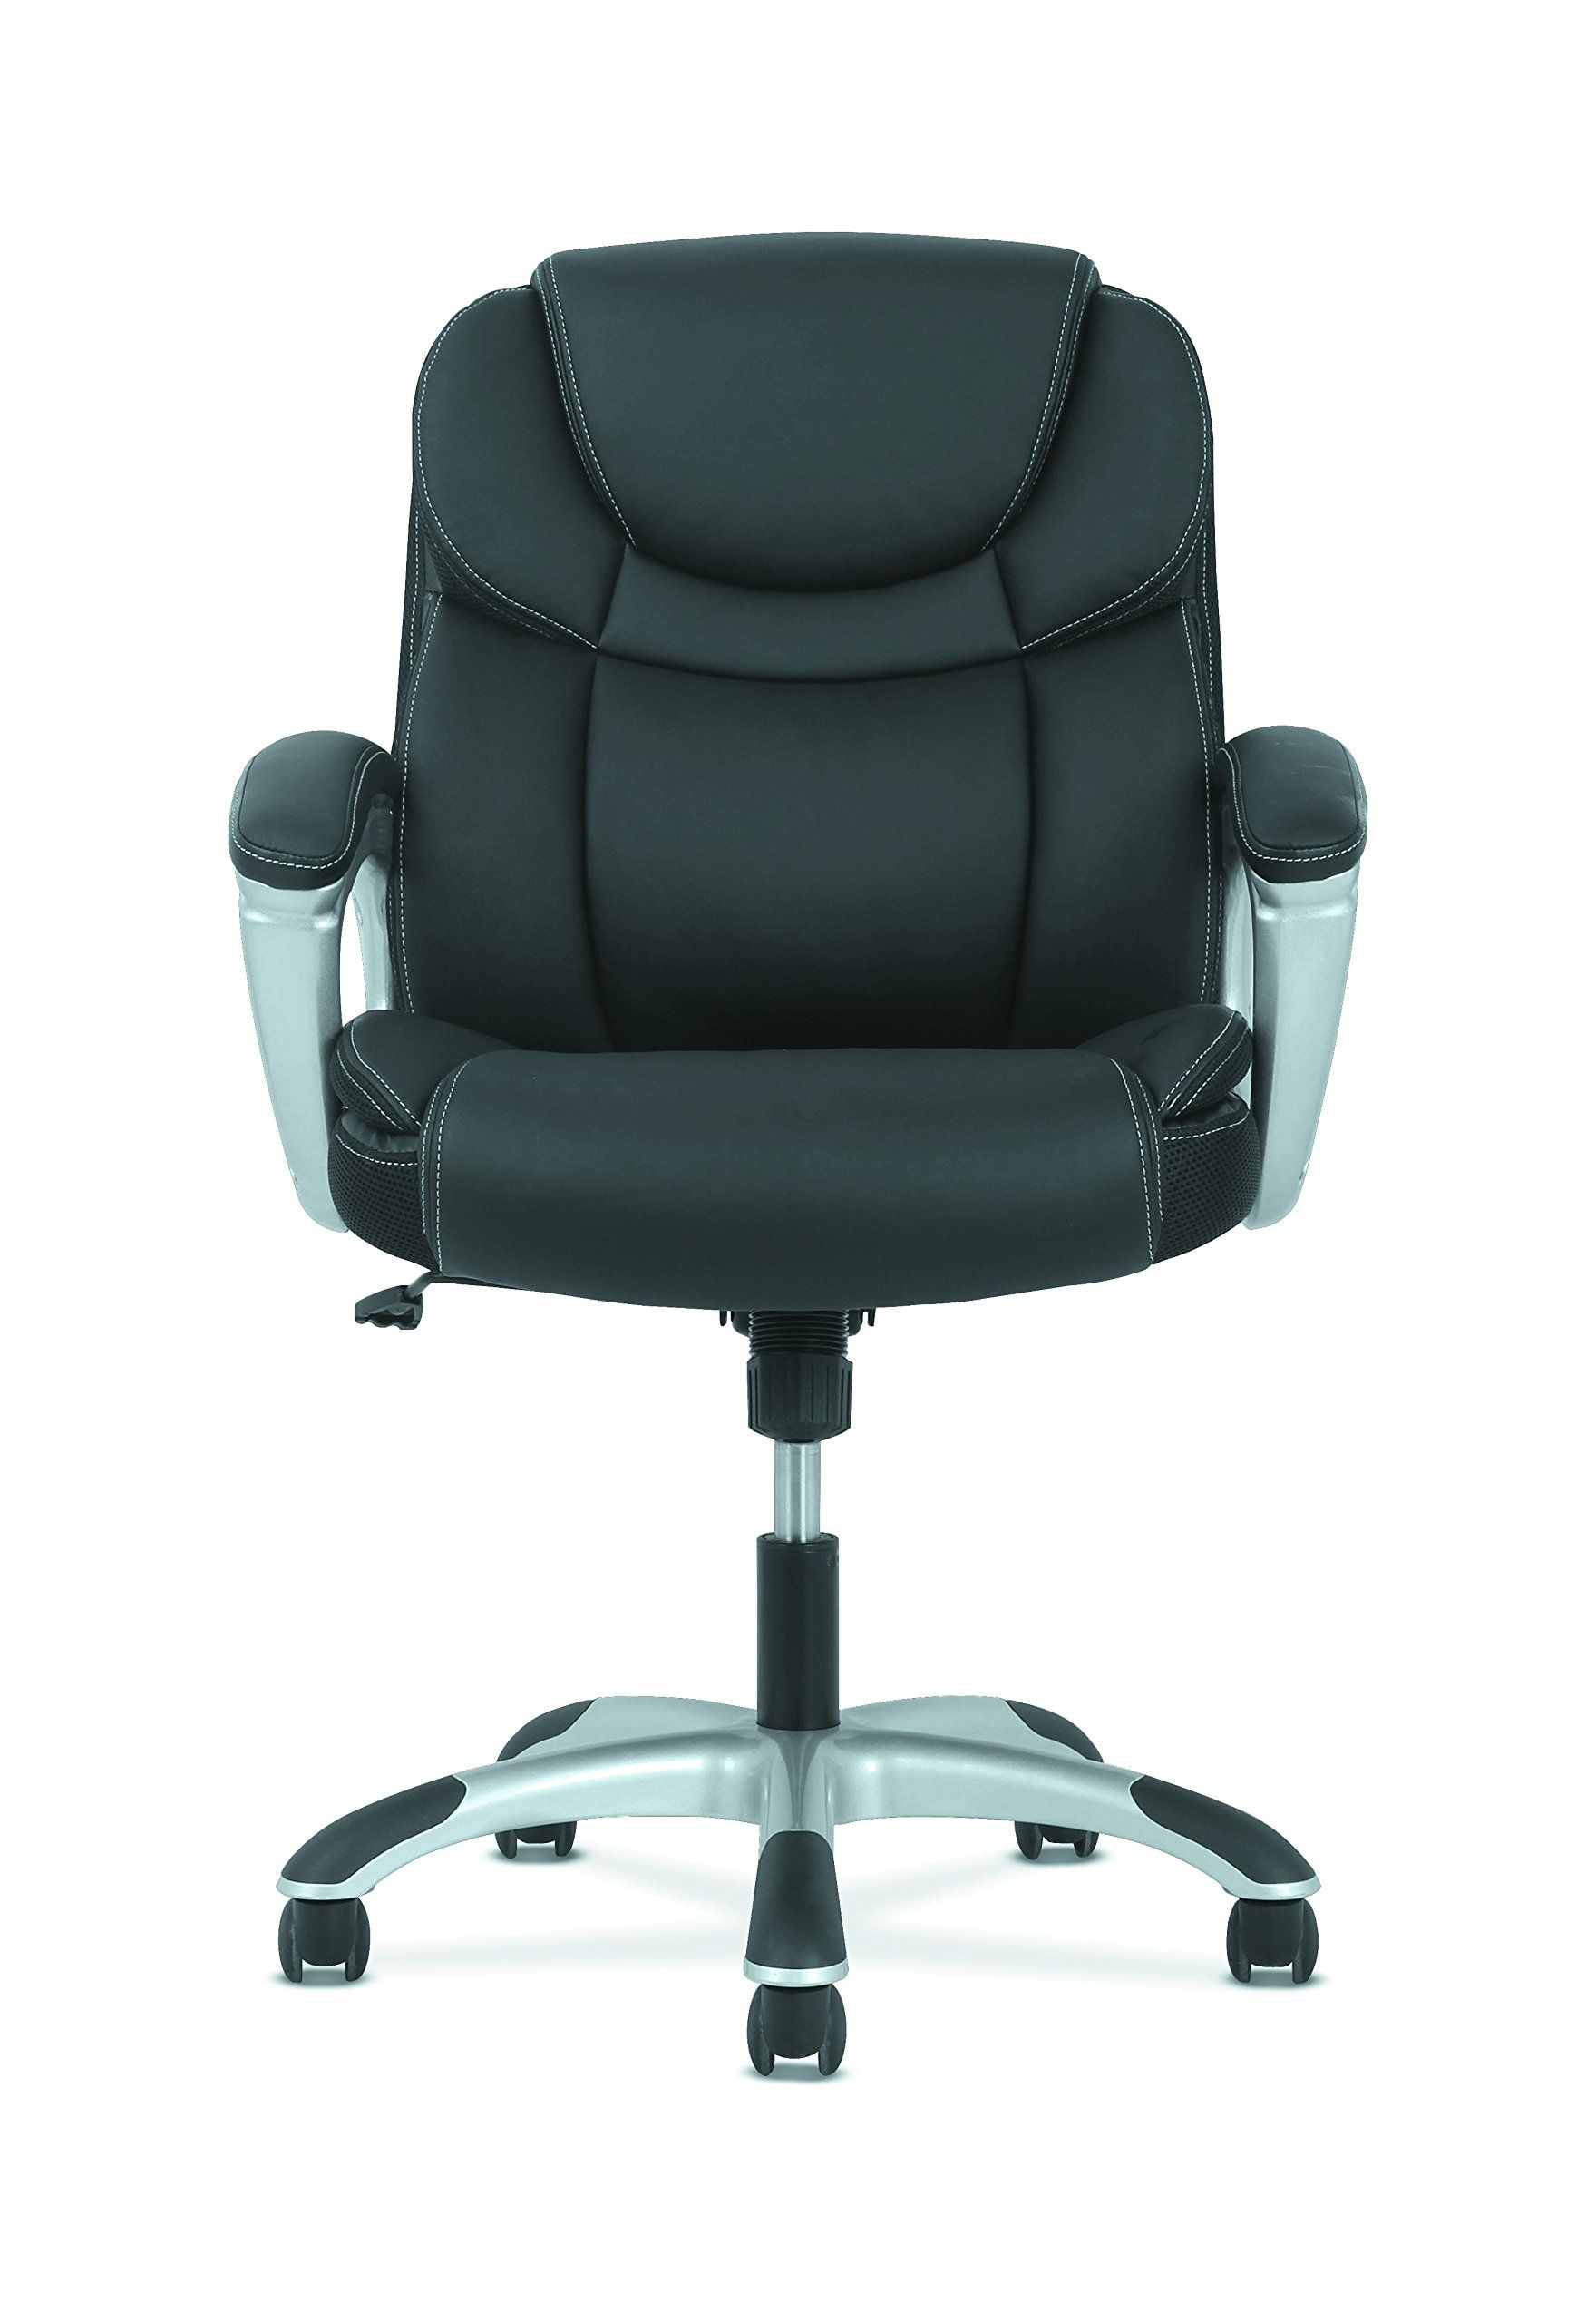 Hon Sadie Leather Executive Computer/office Chair With Arms in Sadie Ii Swivel Accent Chairs